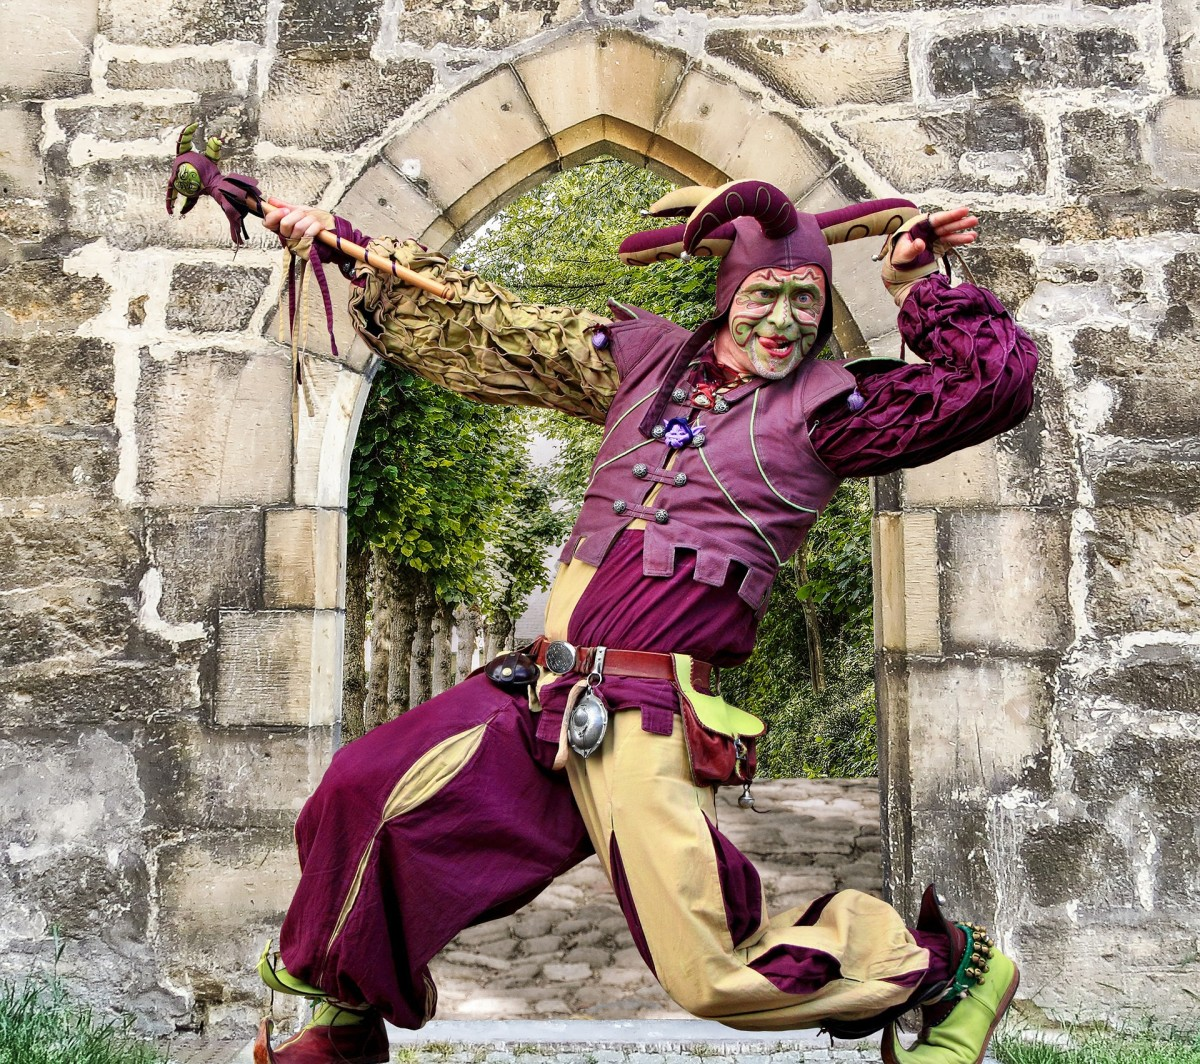 The Jester - a Medieval Poem